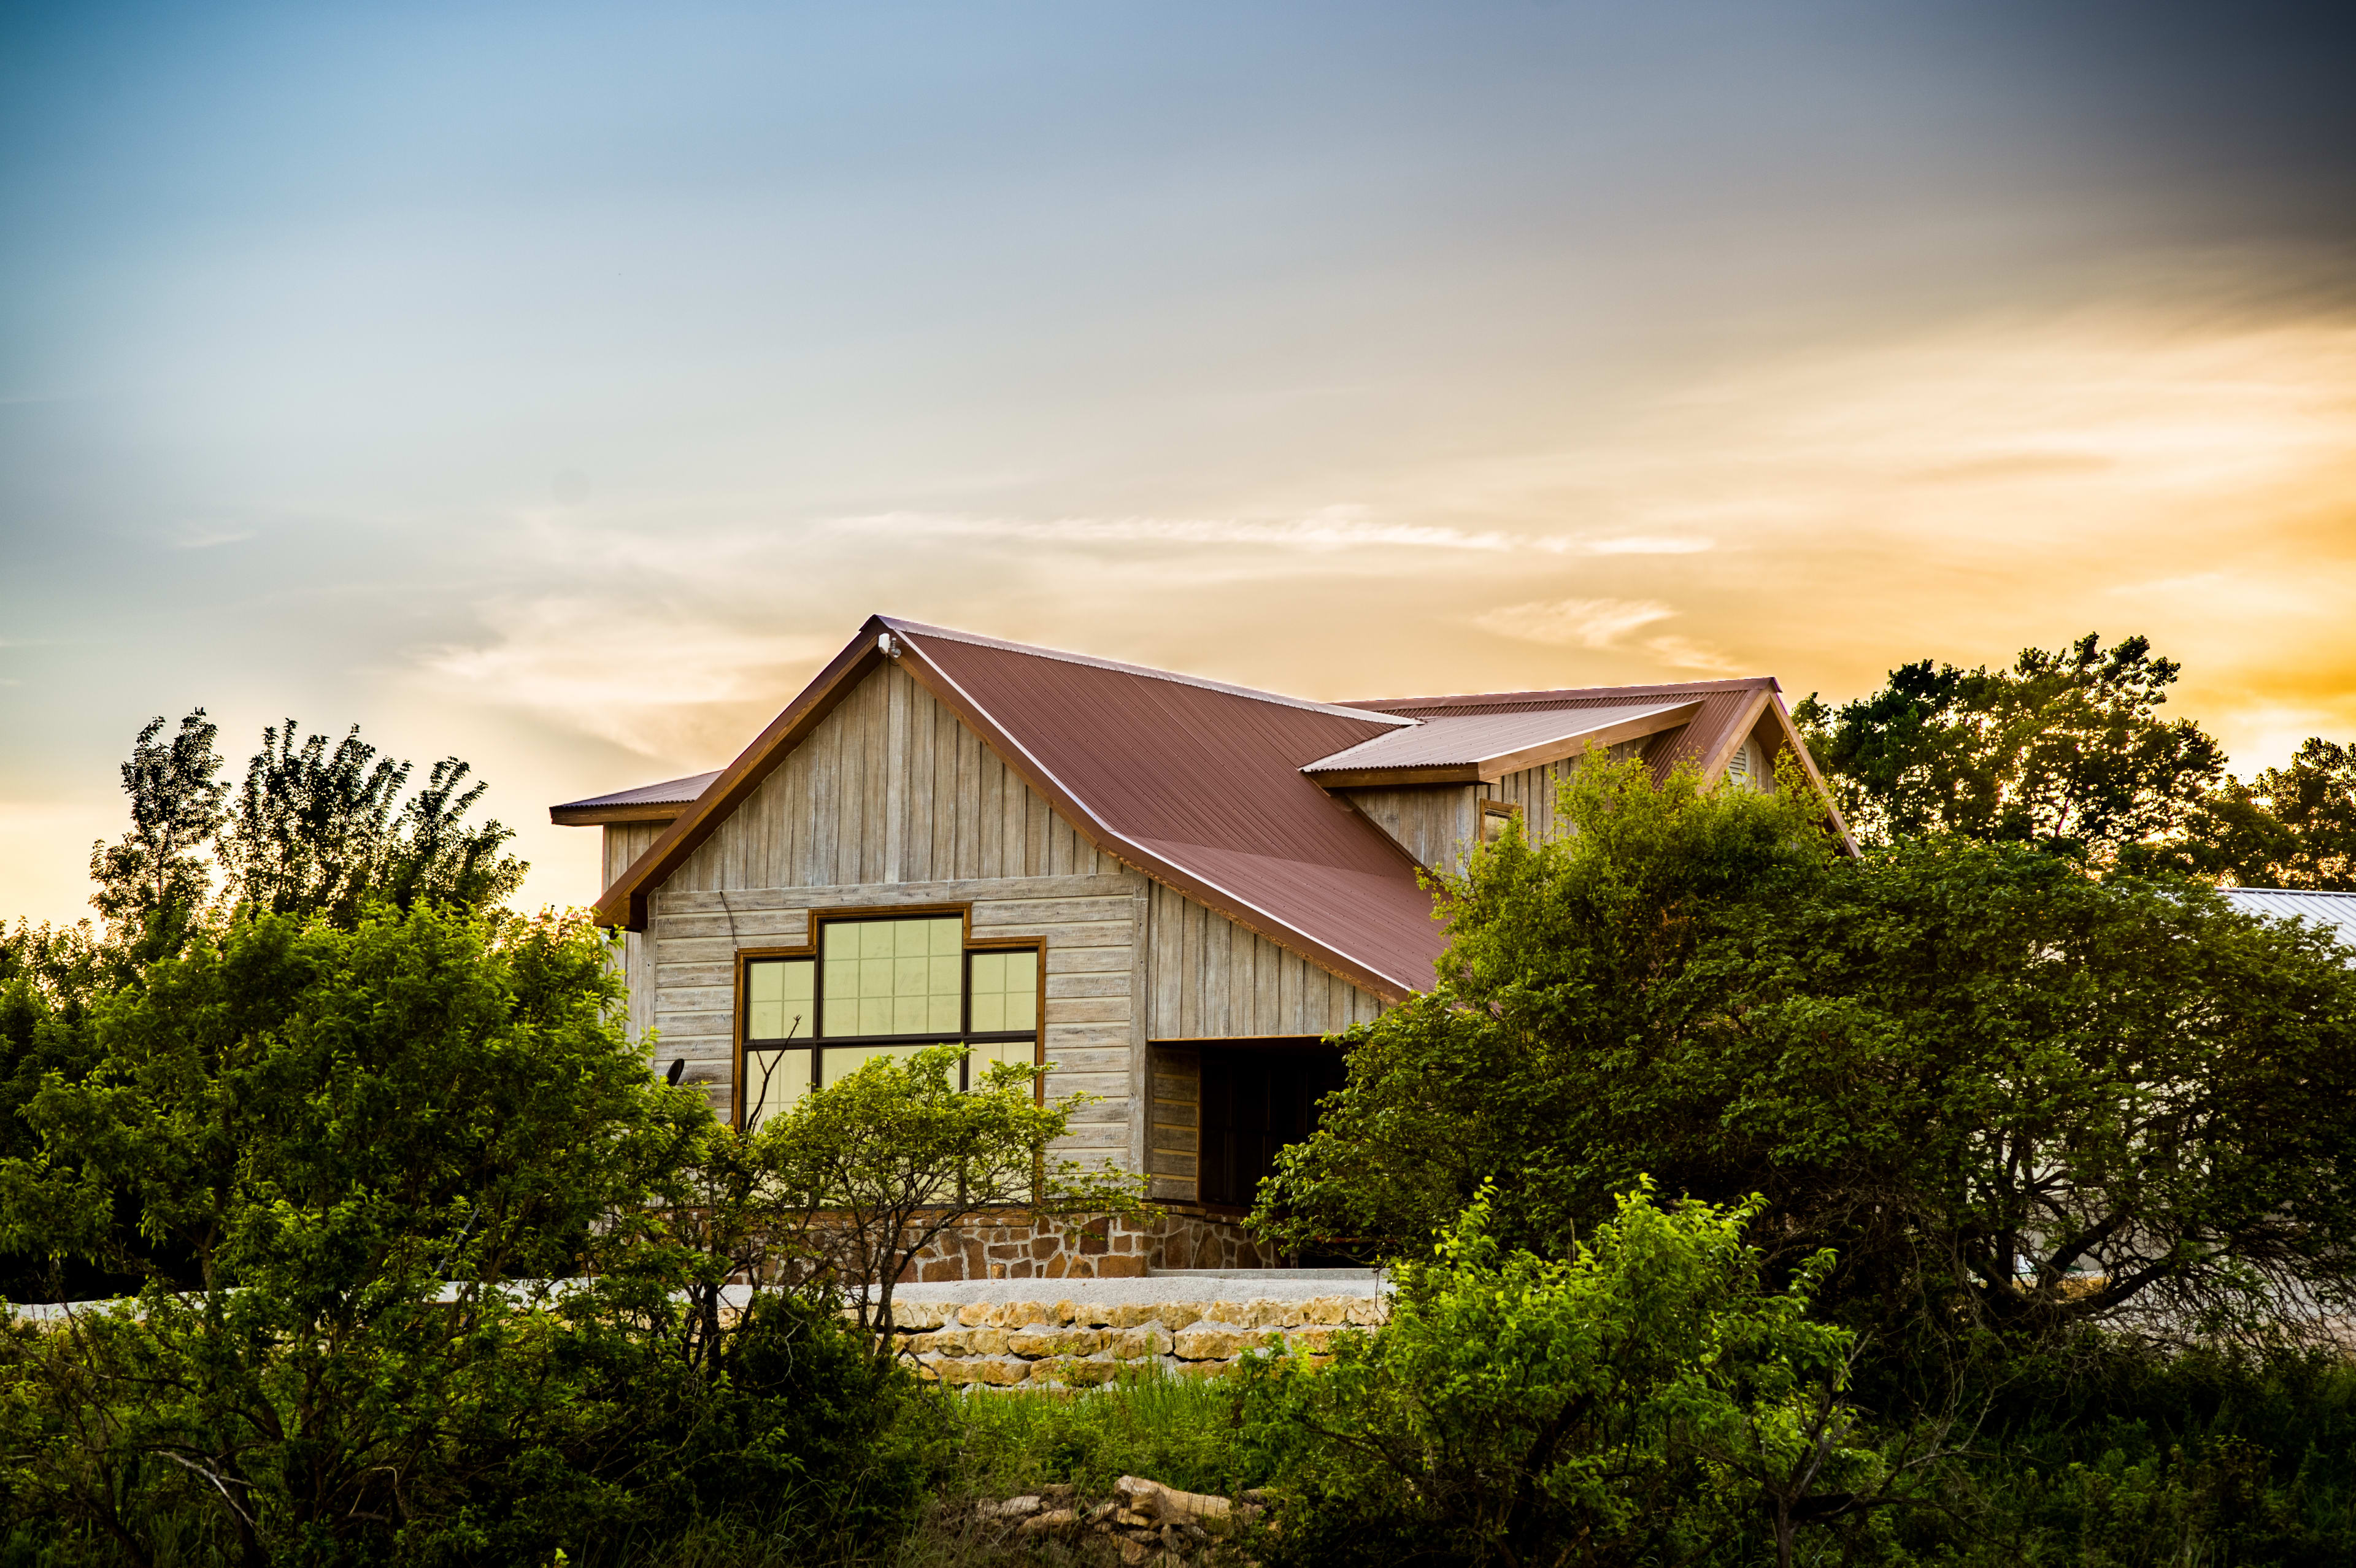 The cabin is truly immersed in the natural beauty of the area.